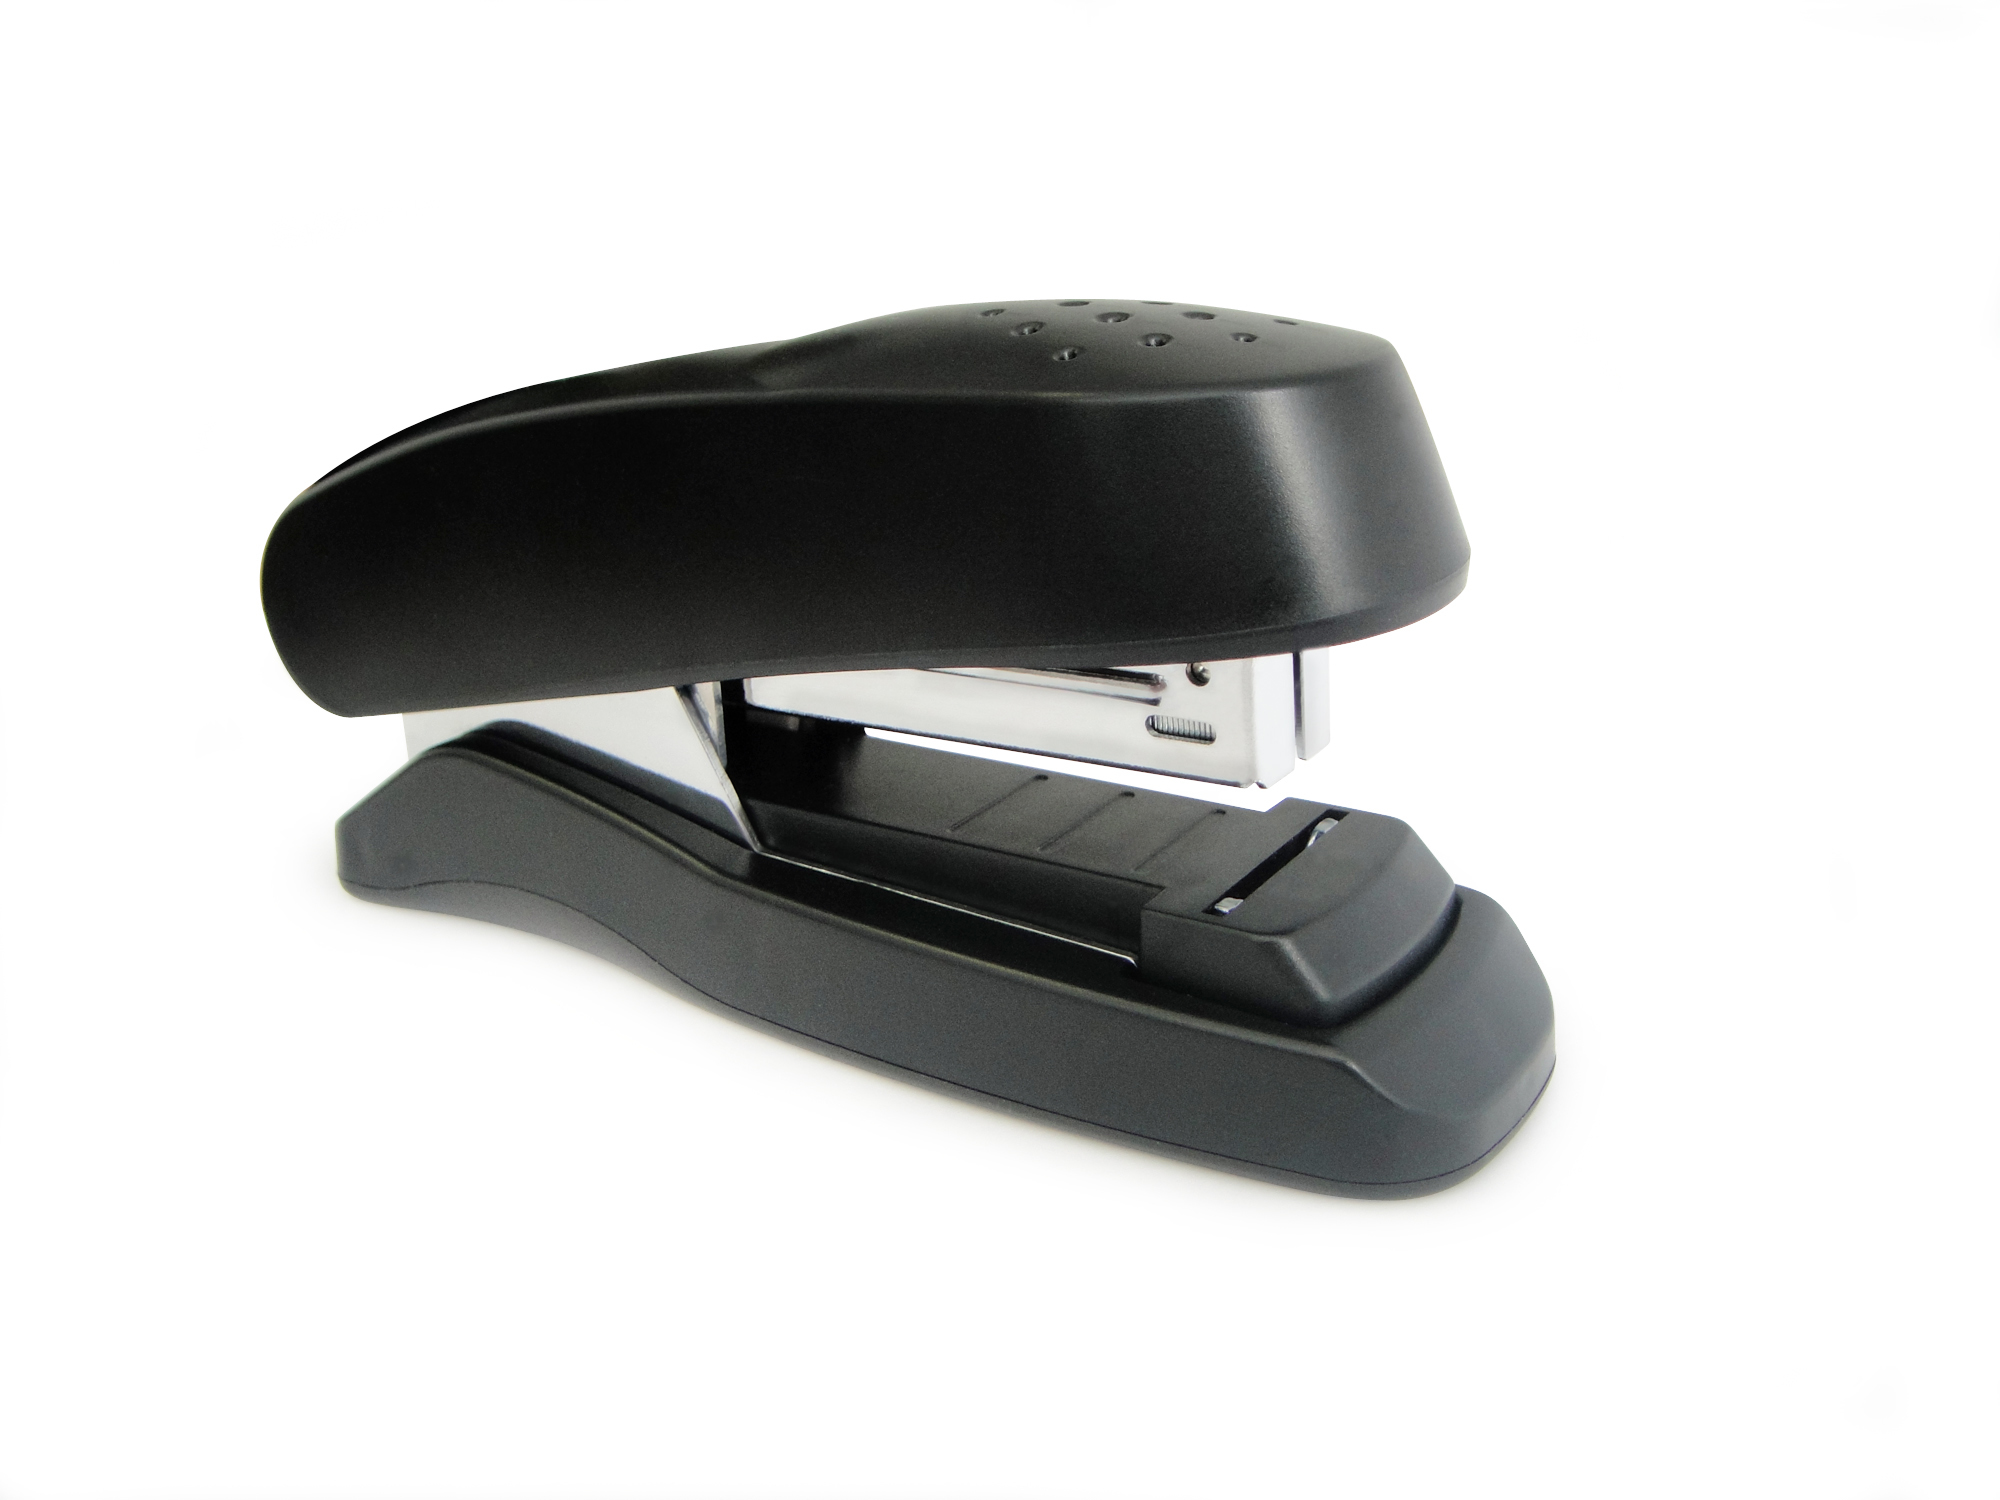 rapesco Rapesco Flat Clinch Half Strip Stapler (black) 1064 - AD01